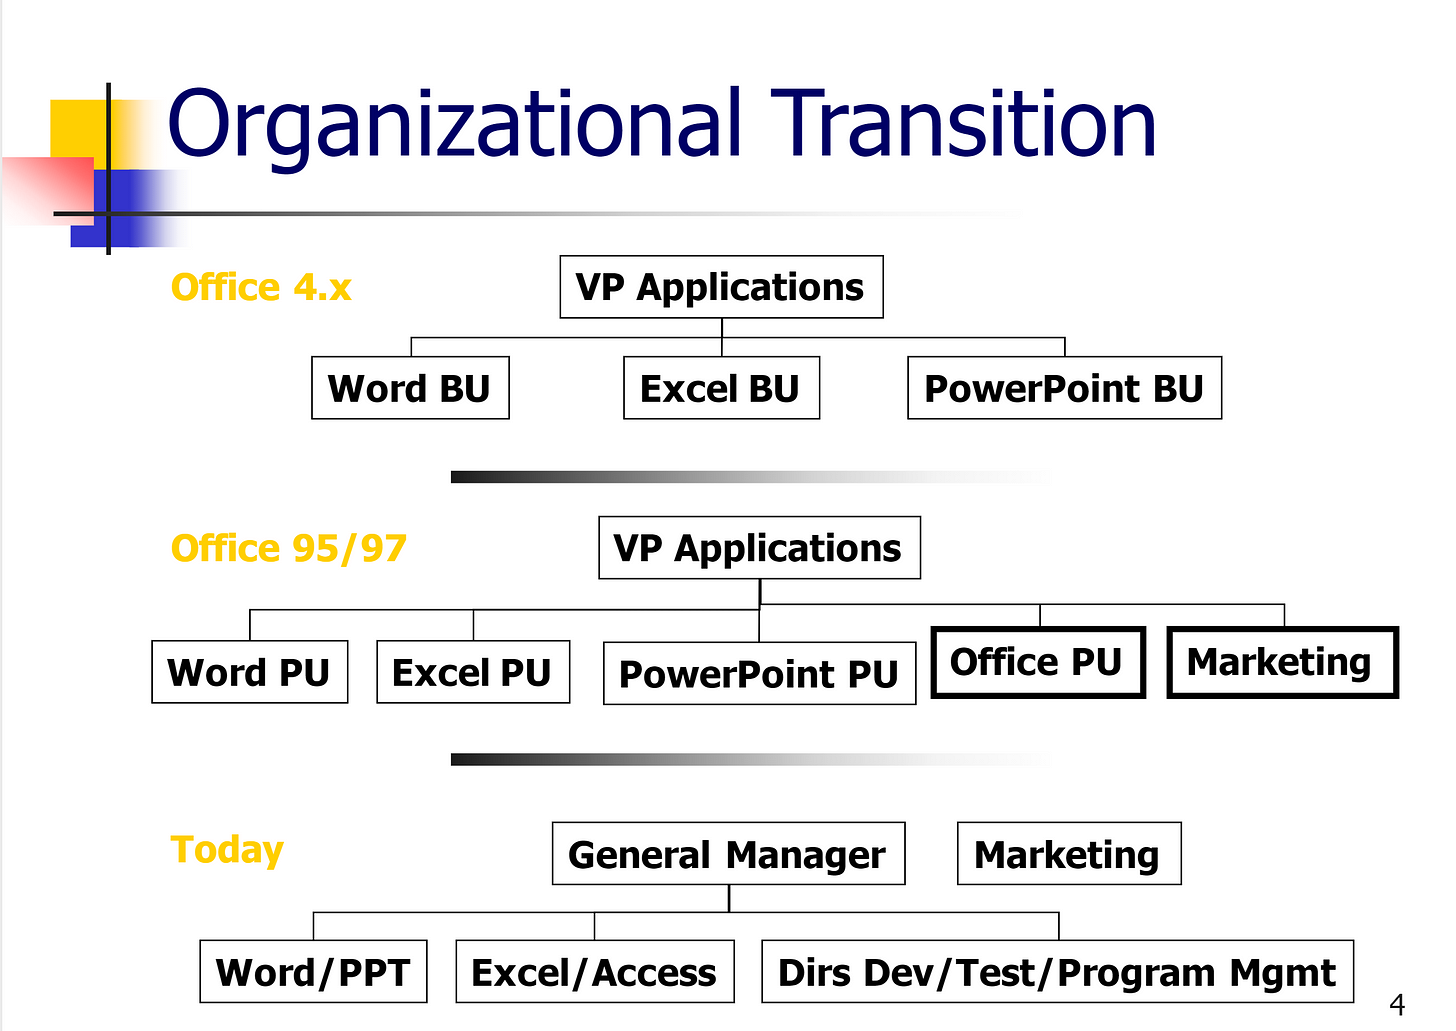 Office organization transition showing the 4.x org of Business Units, the 95/97 org showing the addition of the Office Product Unit, and the new organization showing the combined Word/PowerPoint, and Excel/Access teams with the OPU team.